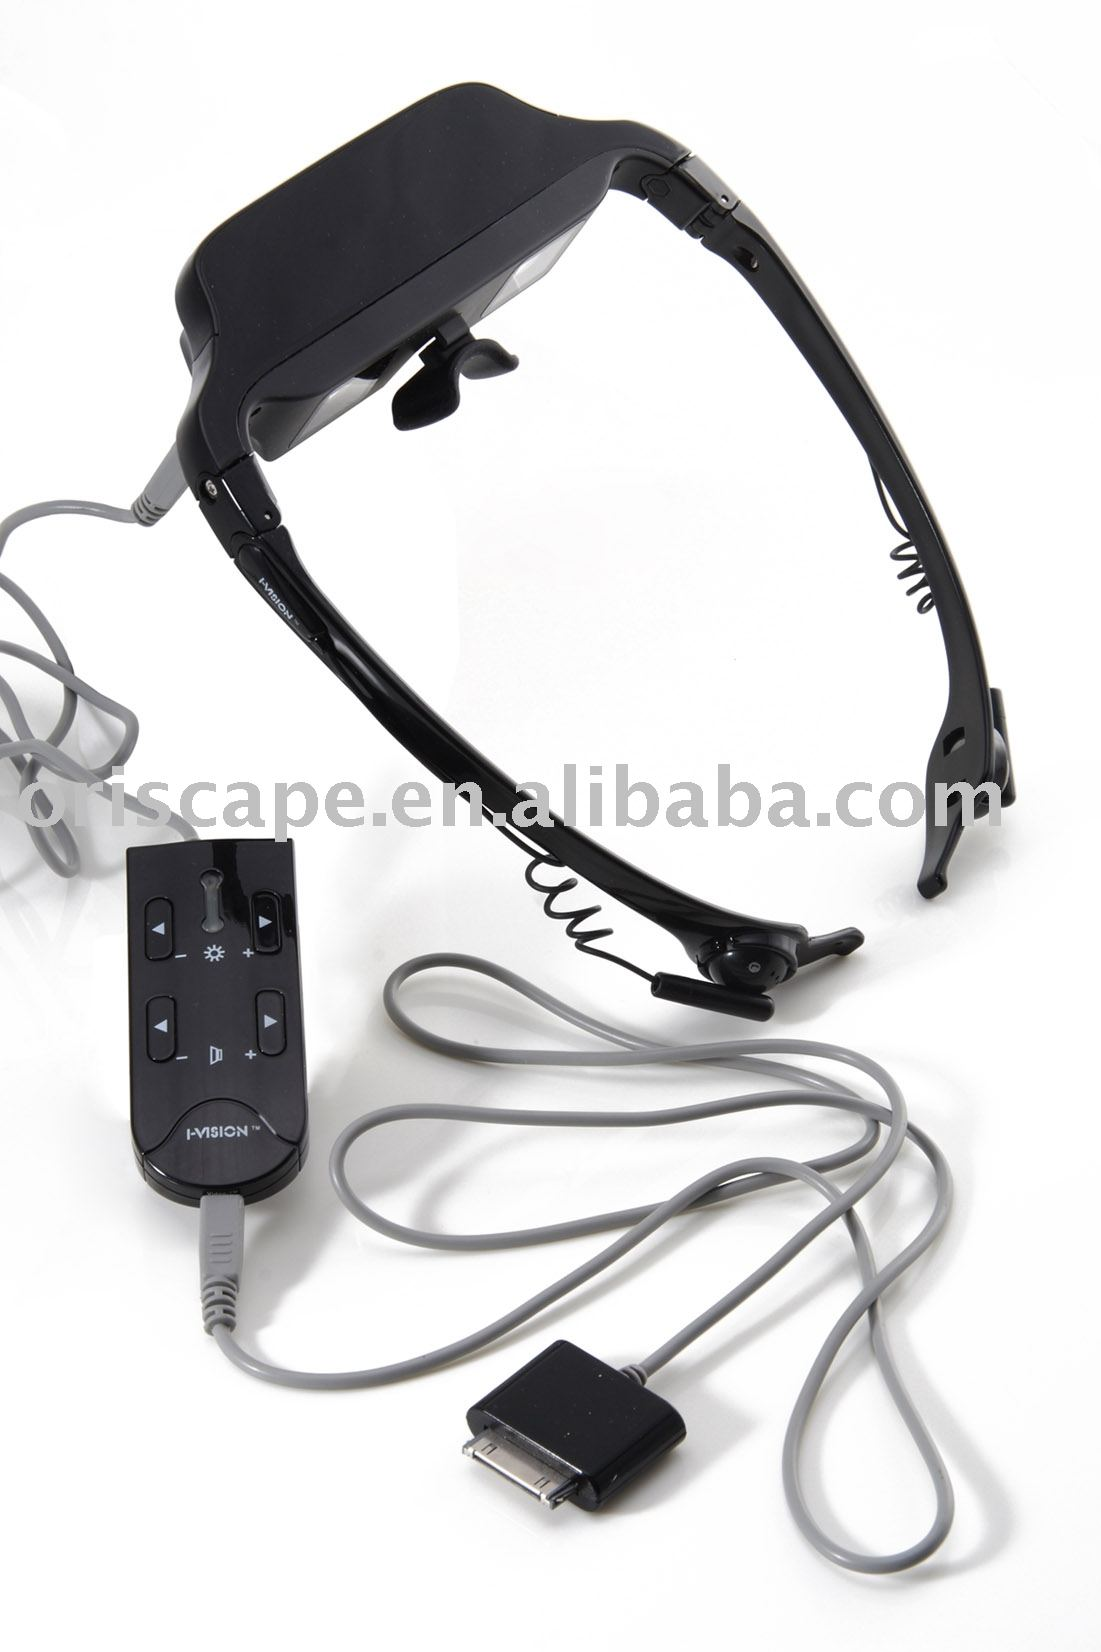 Video Glasses for iPod, MP5, DVD, TV, play station